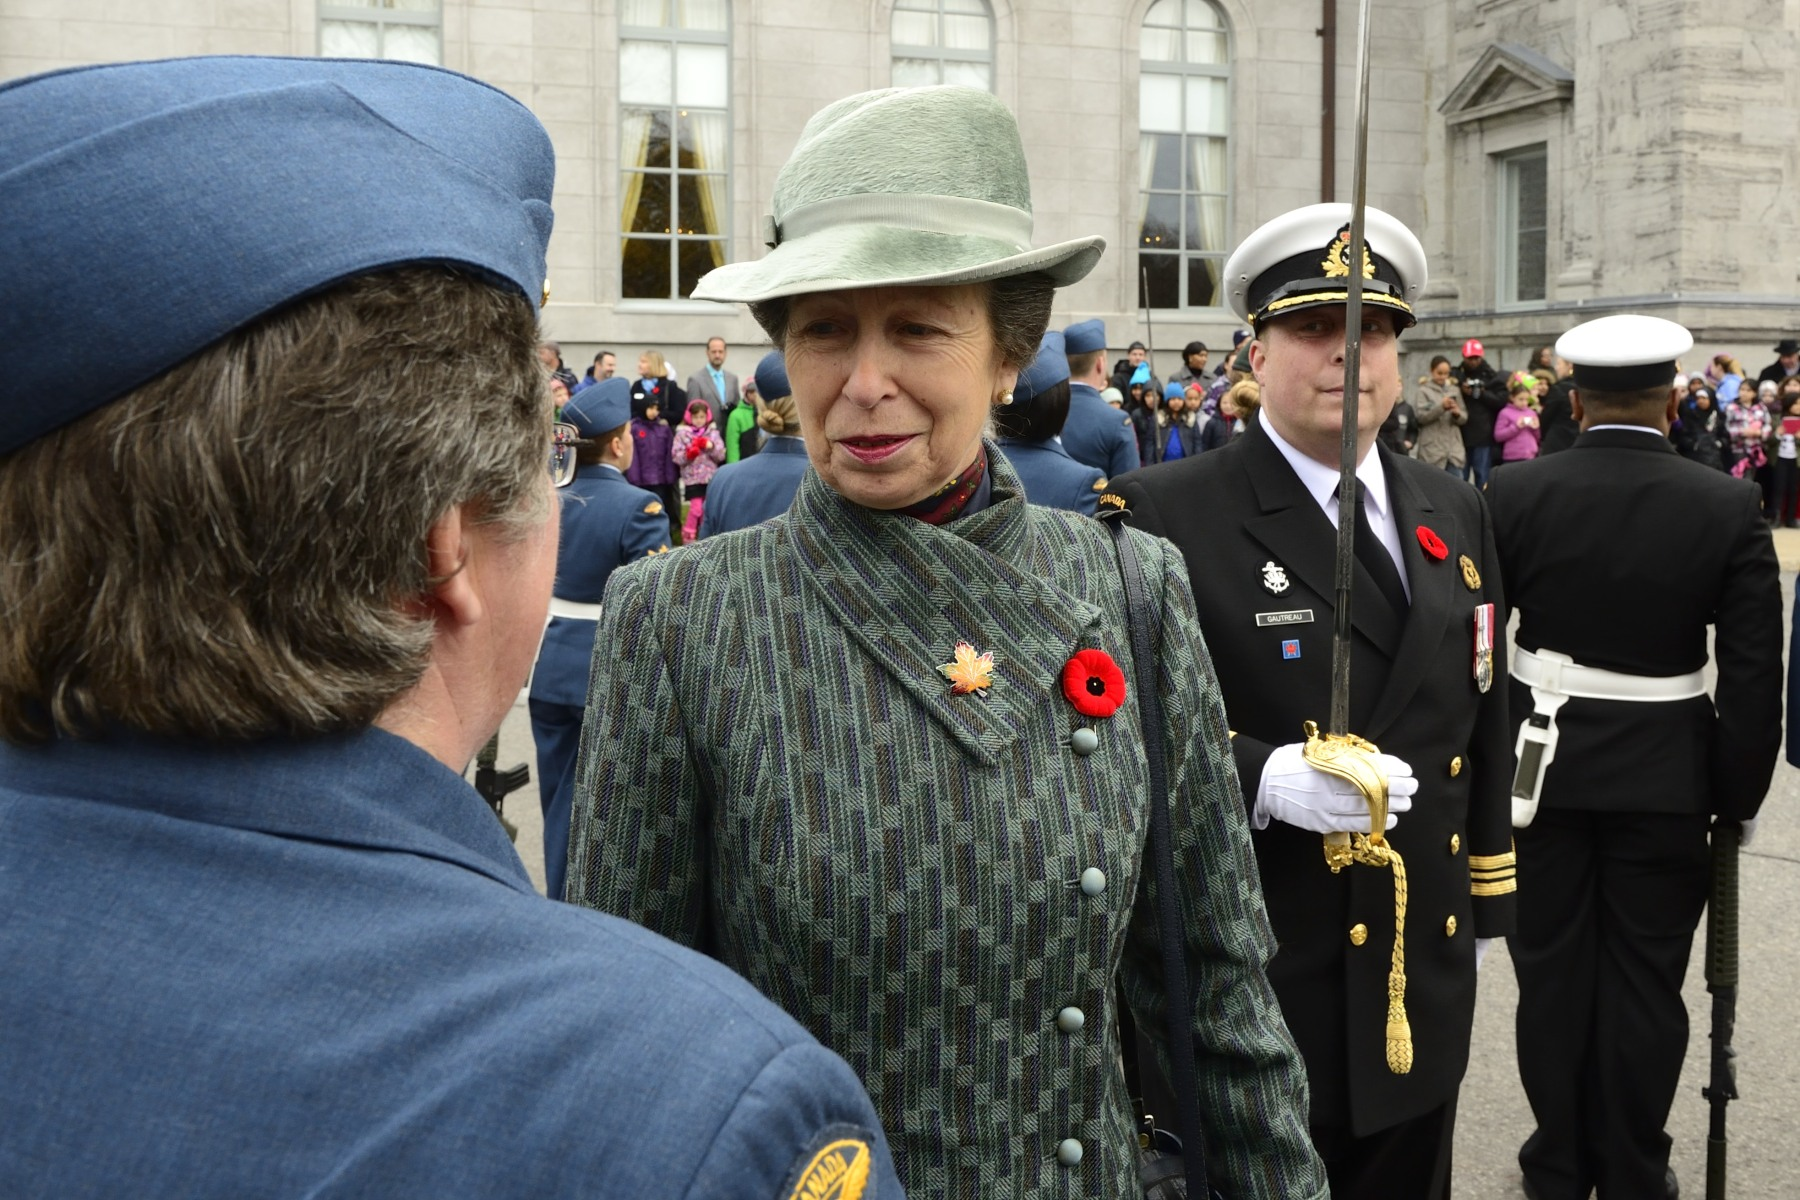 Members of the public were invited to attend the official welcoming ceremony at Rideau Hall.